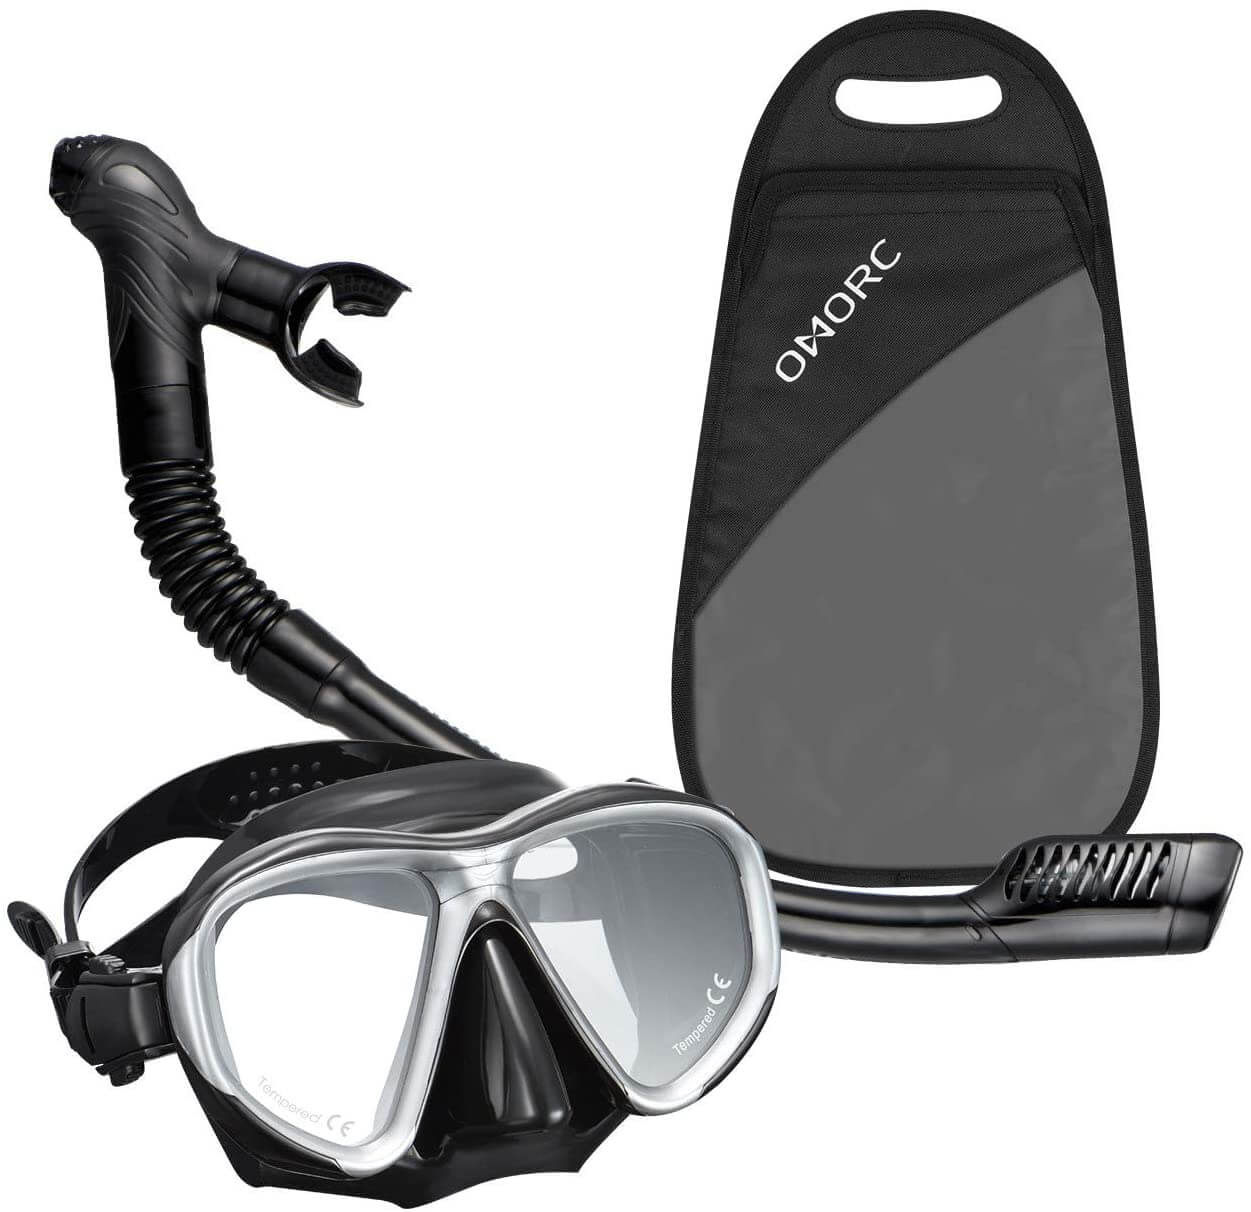 Who Should Buy This Snorkel Set